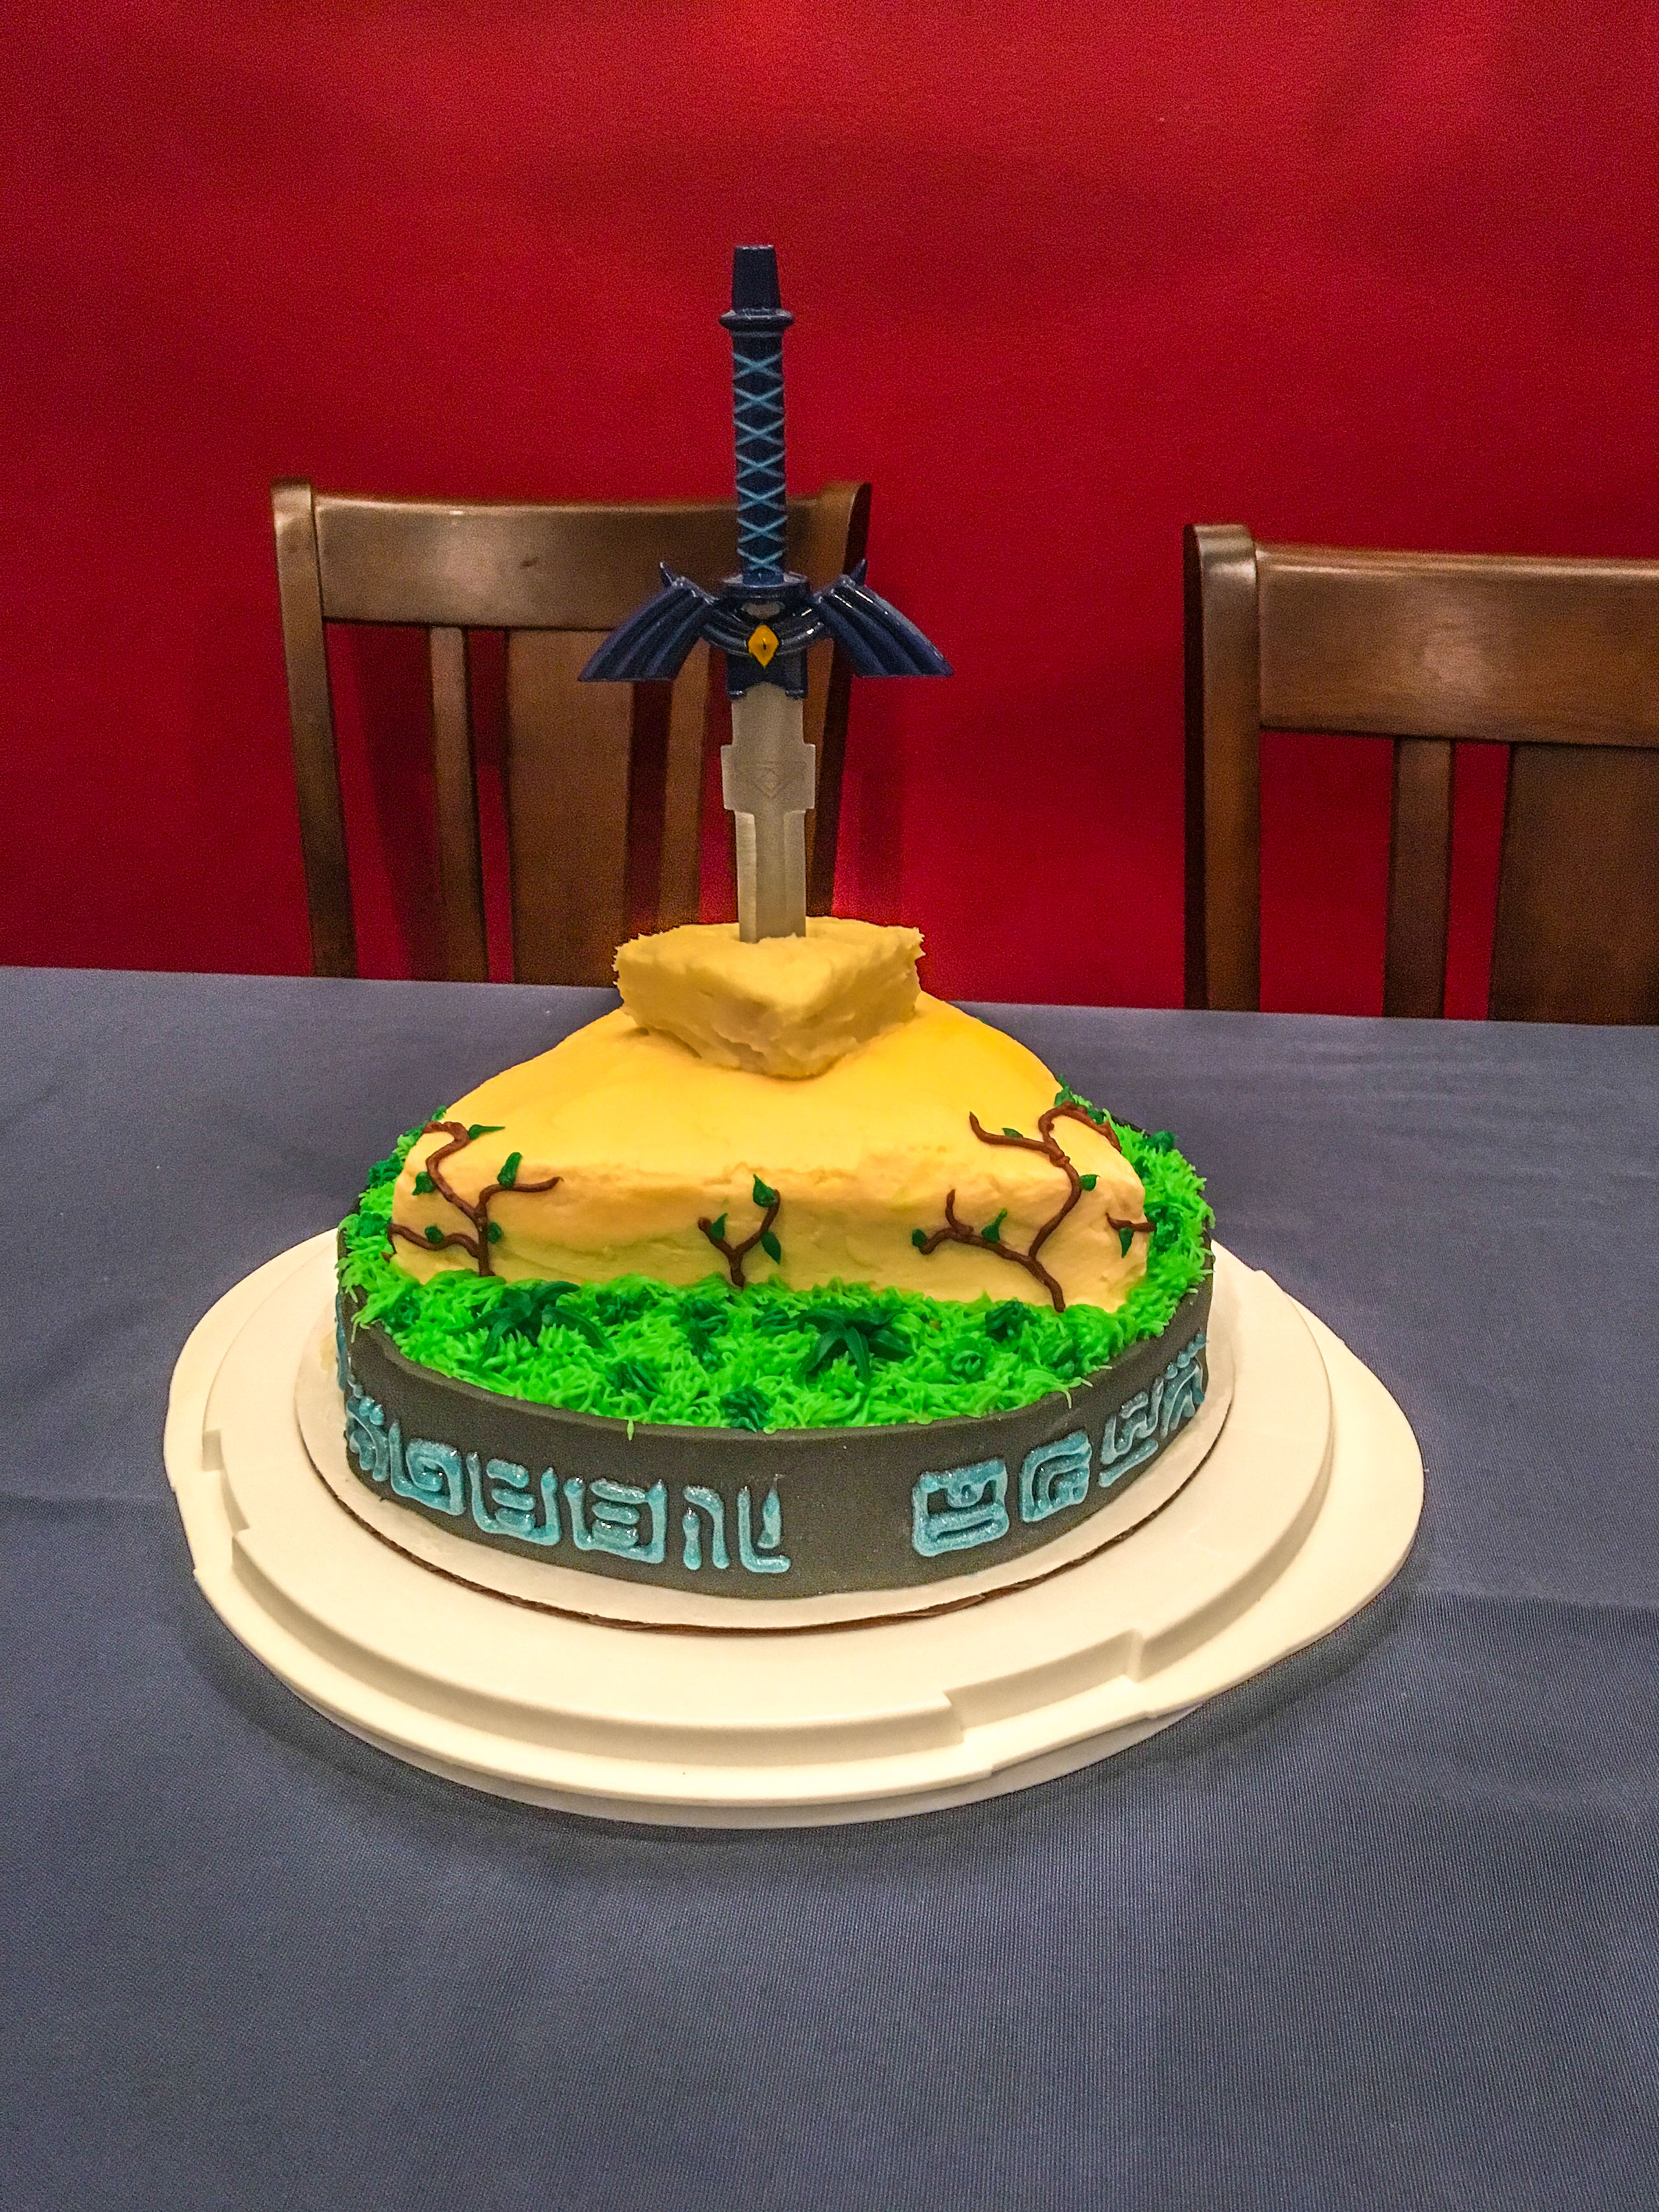 Birthday cake in the shape of the Korok forest Master Sword platform from Legend of Zelda: Breath of the Wild